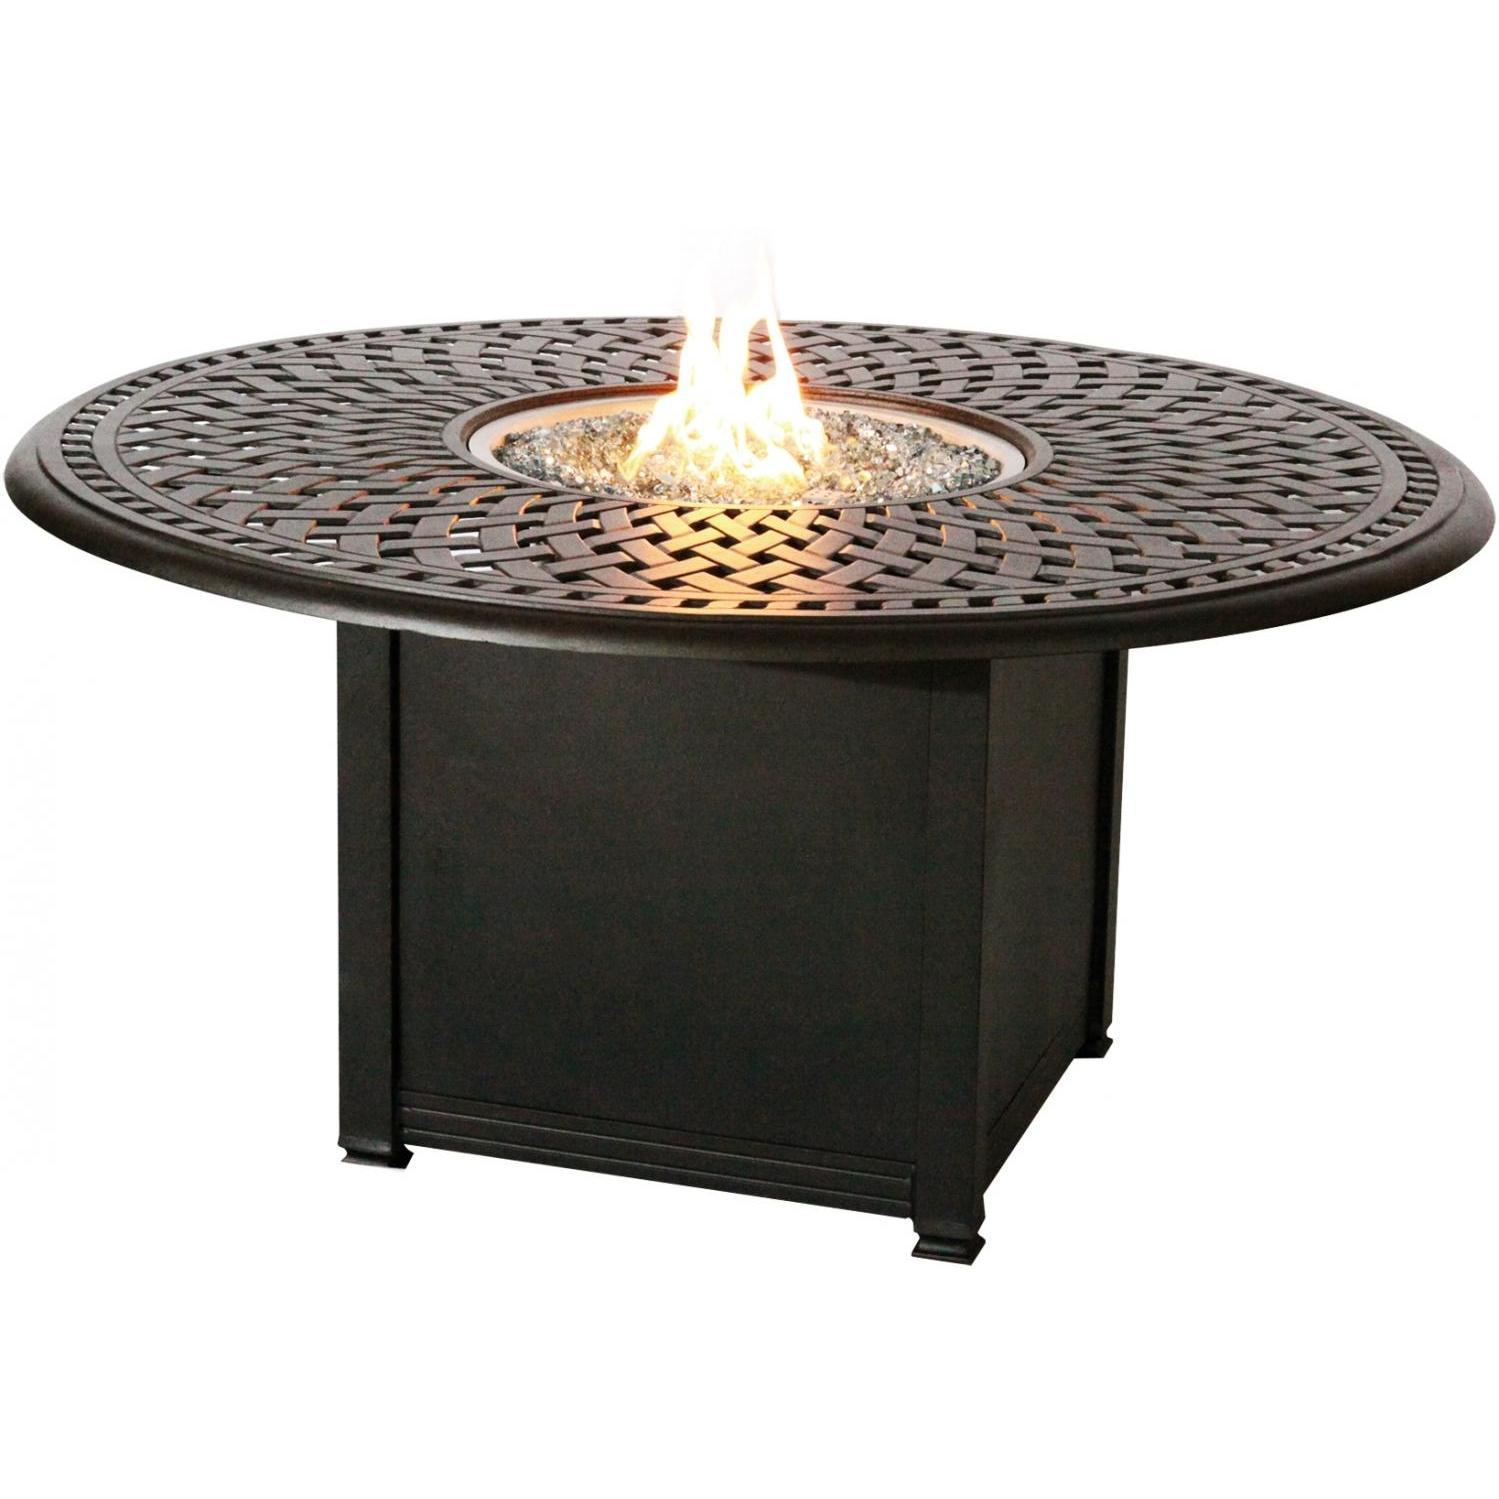 Contemporary Darlee Round Patio Conversation Table With Propane Fire Pit - Antique Bronze propane patio fireplace